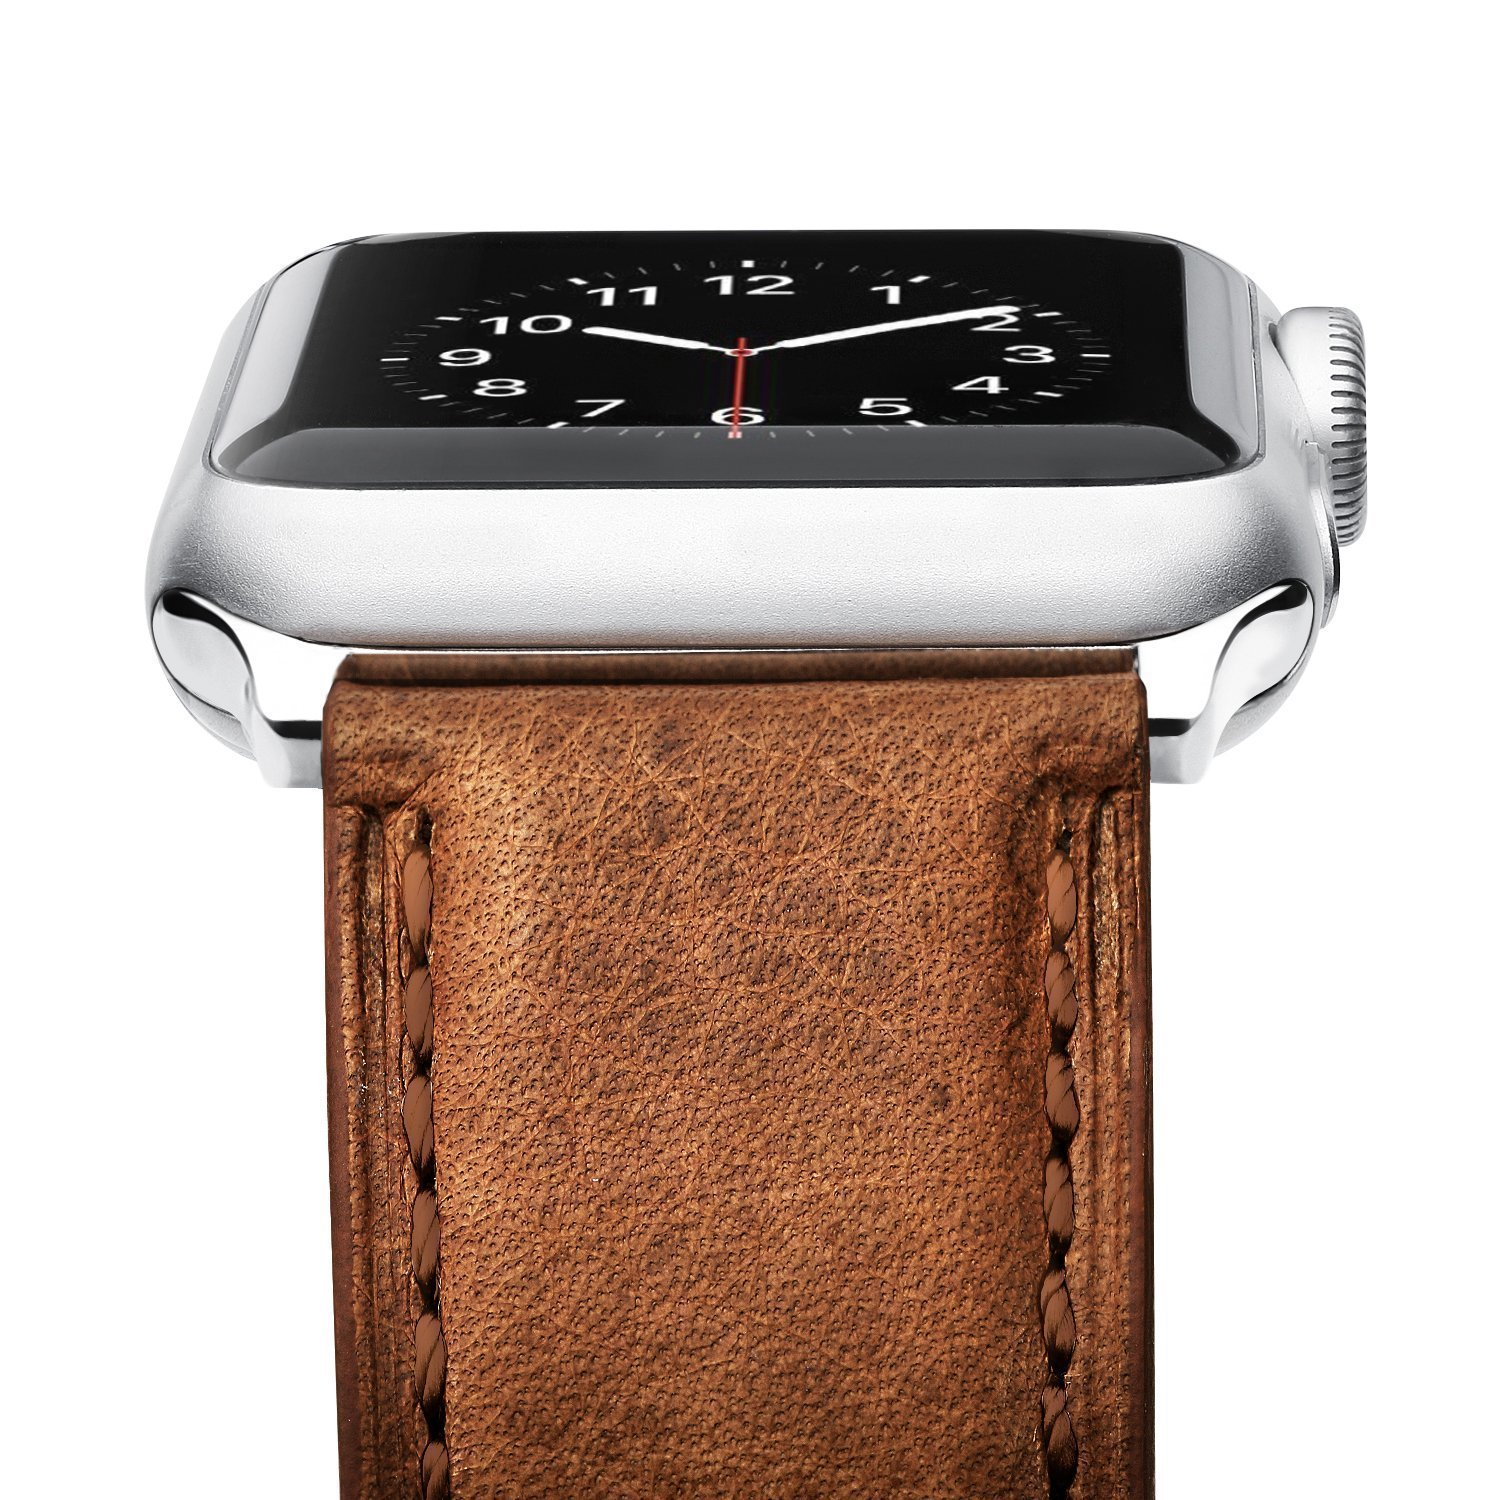 Benuo Leather Band For Apple Watch Series 3, Benuo [Vintage Series] Premium Genuine Leather Strap, Classic Replacement with Secure Buckle, Adapter for iWatch Series 3/ 2/ 1/Edition/Sport 42mm